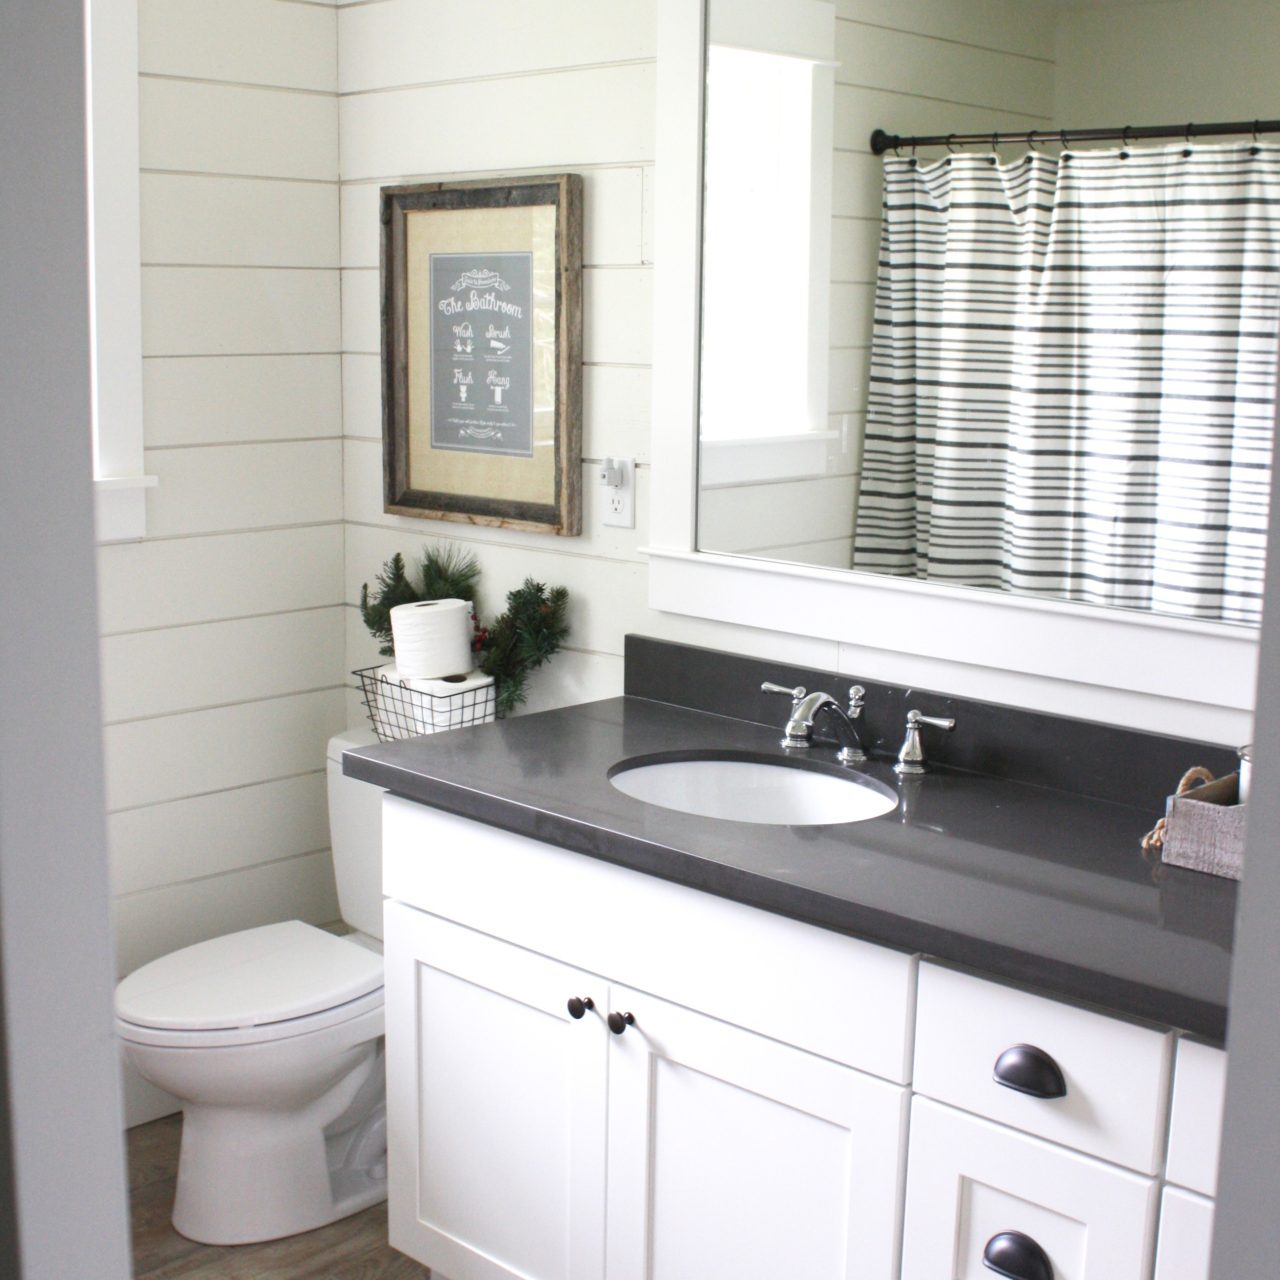 Suburban Farmhouse Interior Bathroom Remodel